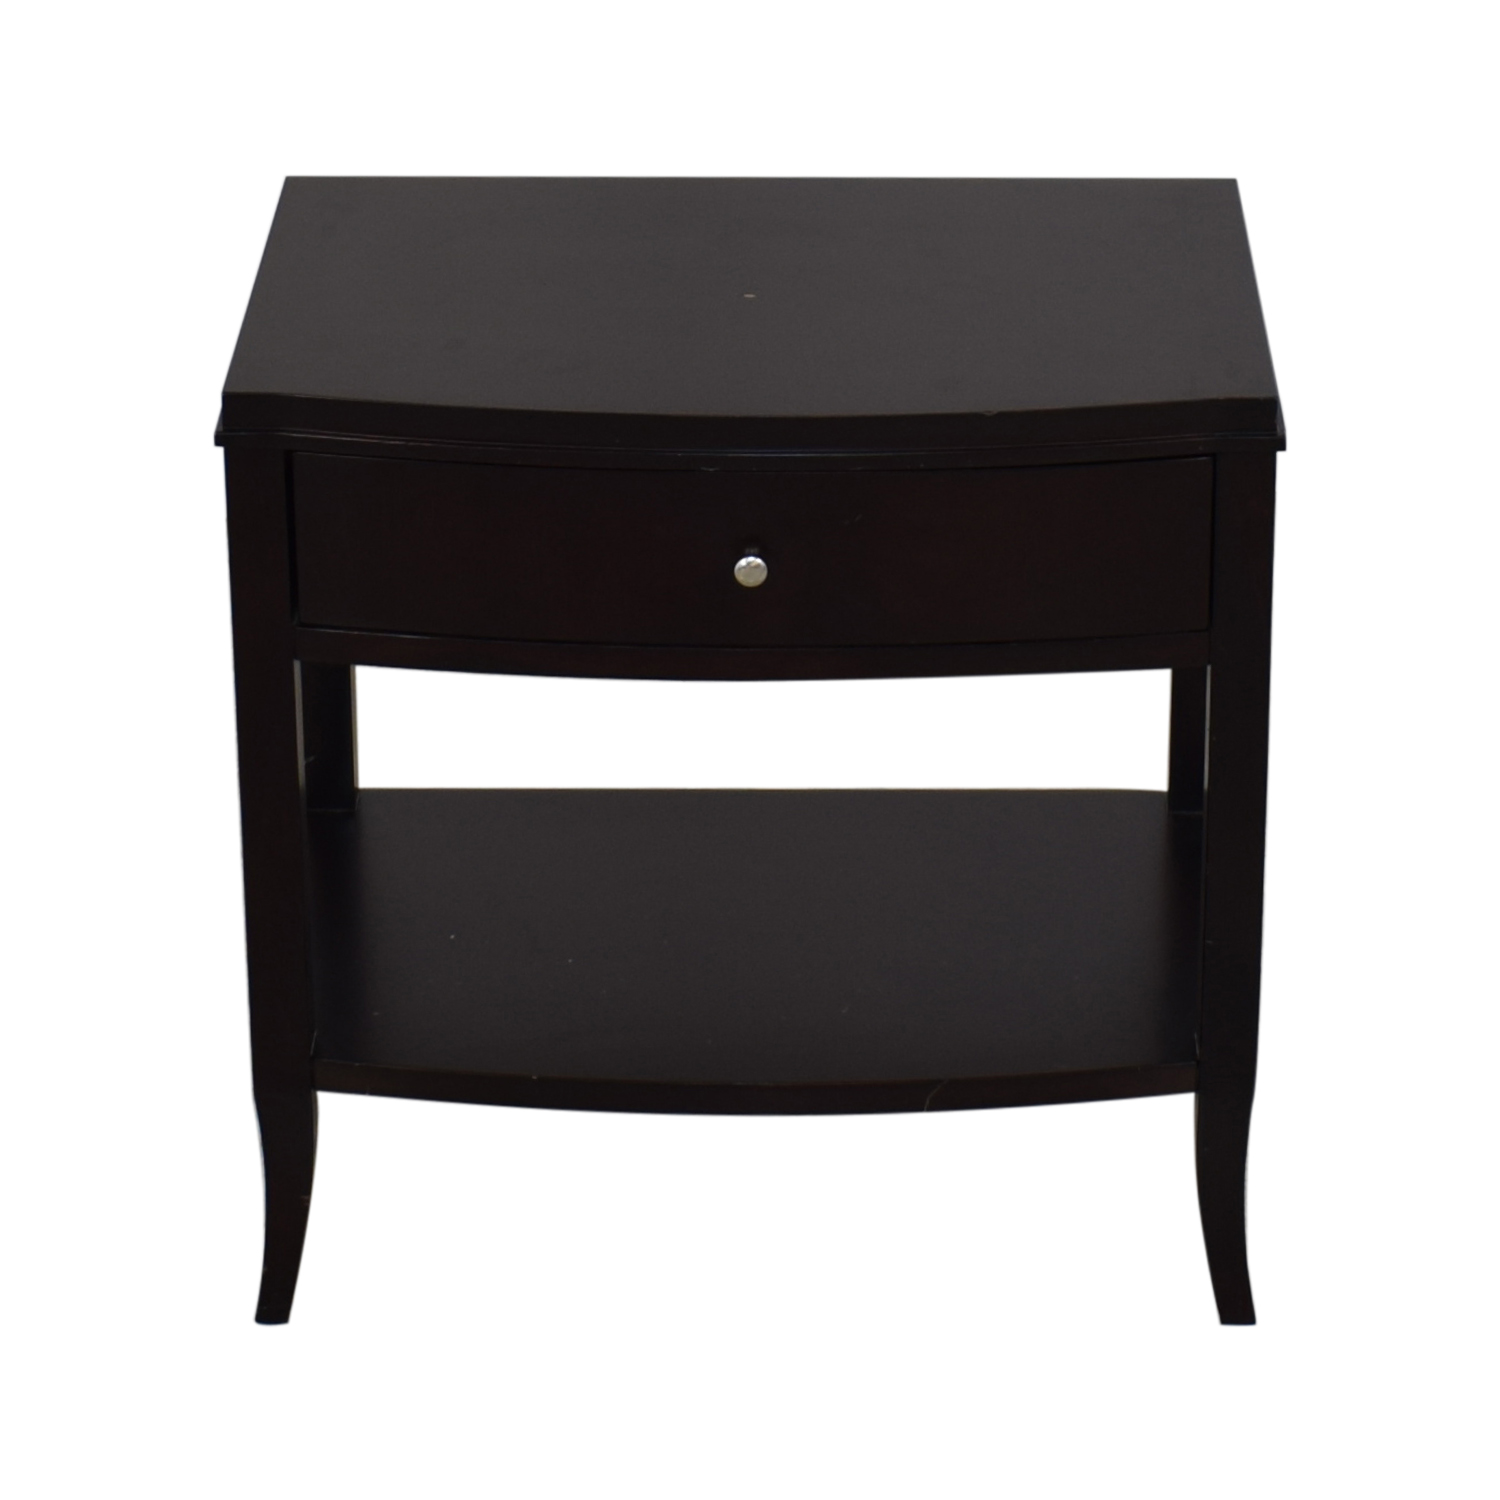 Crate & Barrel Crate & Barrel Colette Nightstand End Tables